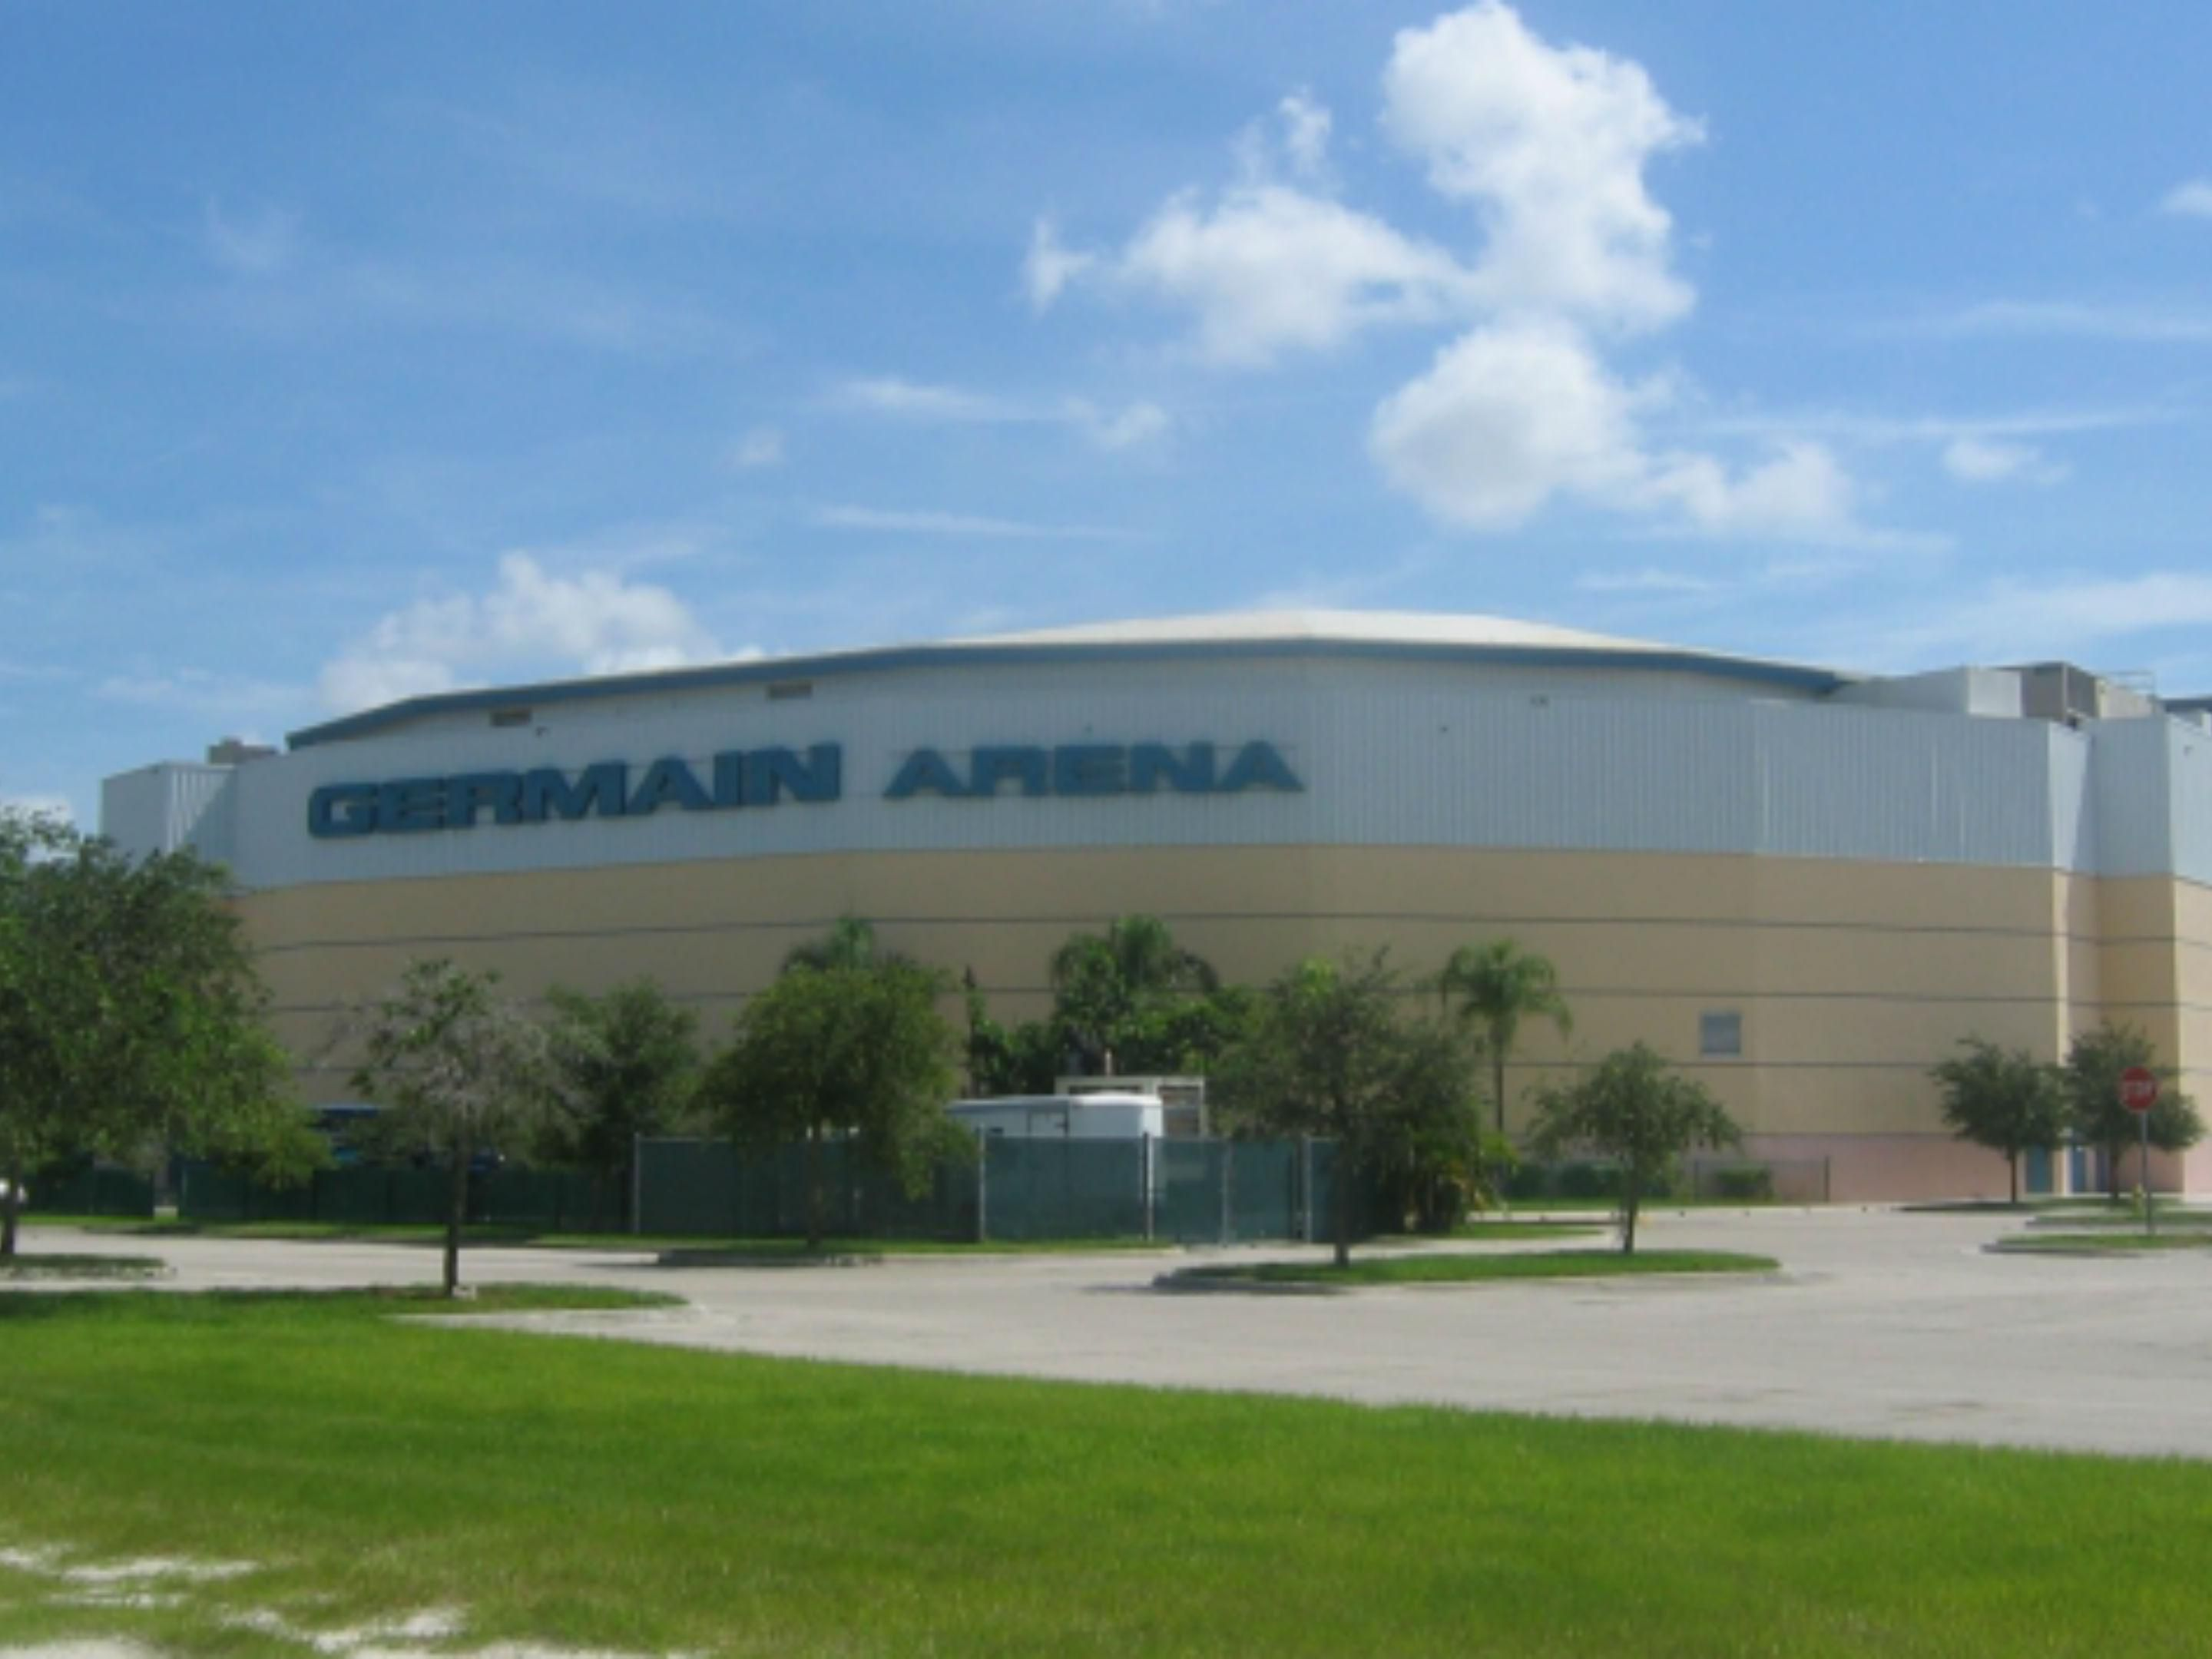 Germain Arena-Great venue for sports, shows, and concerts